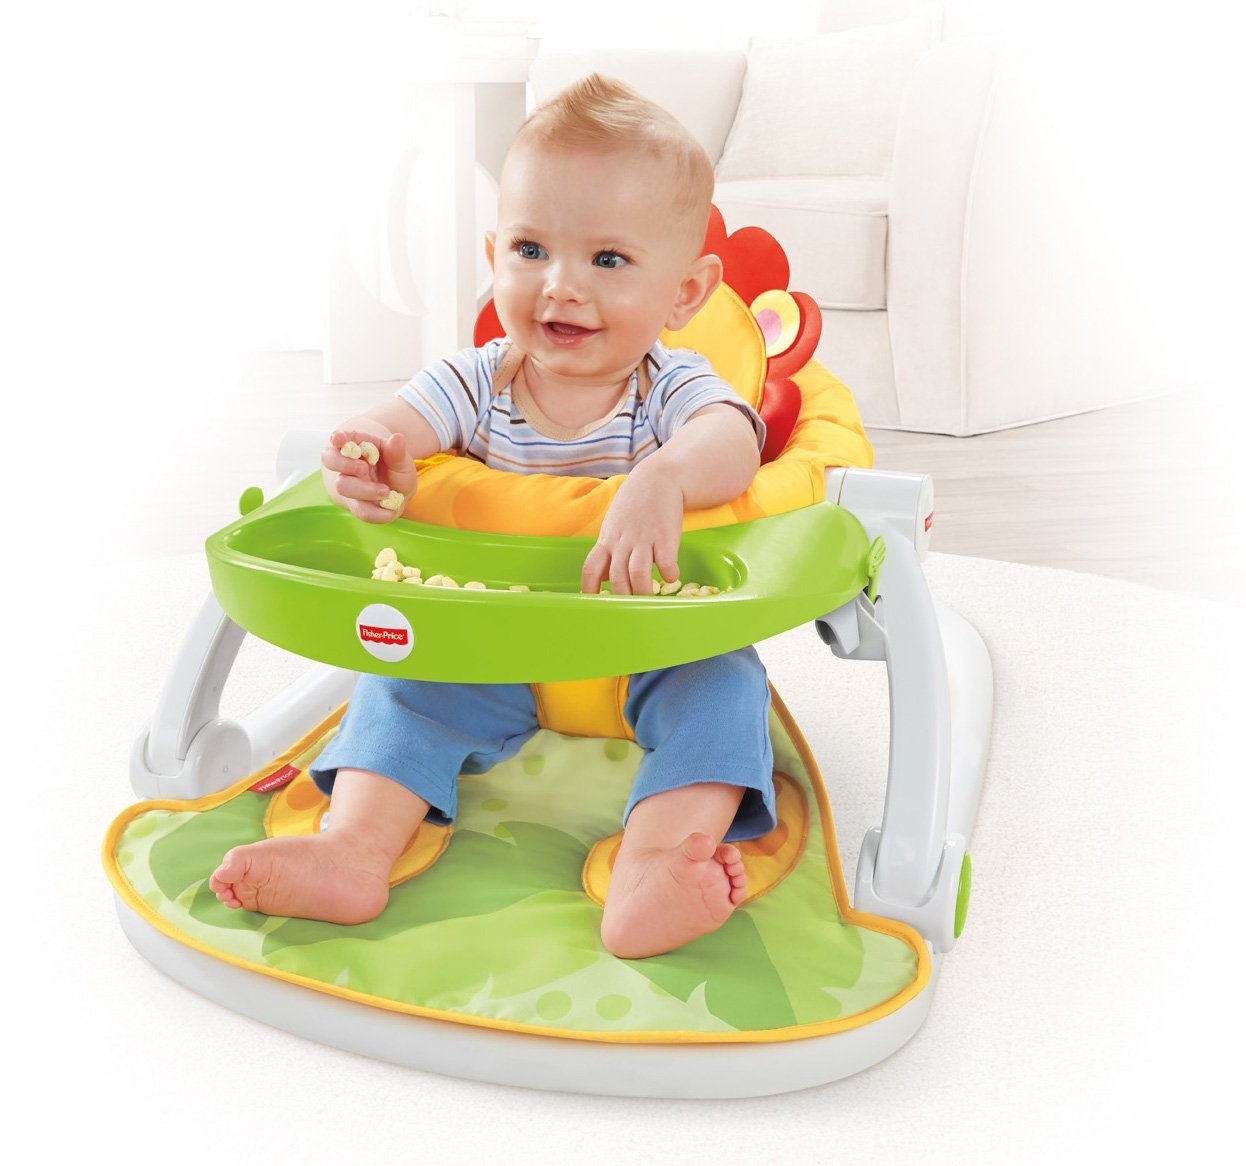 sit me up chair for babies wheelchair parts fisher price floor seat with tray best educational